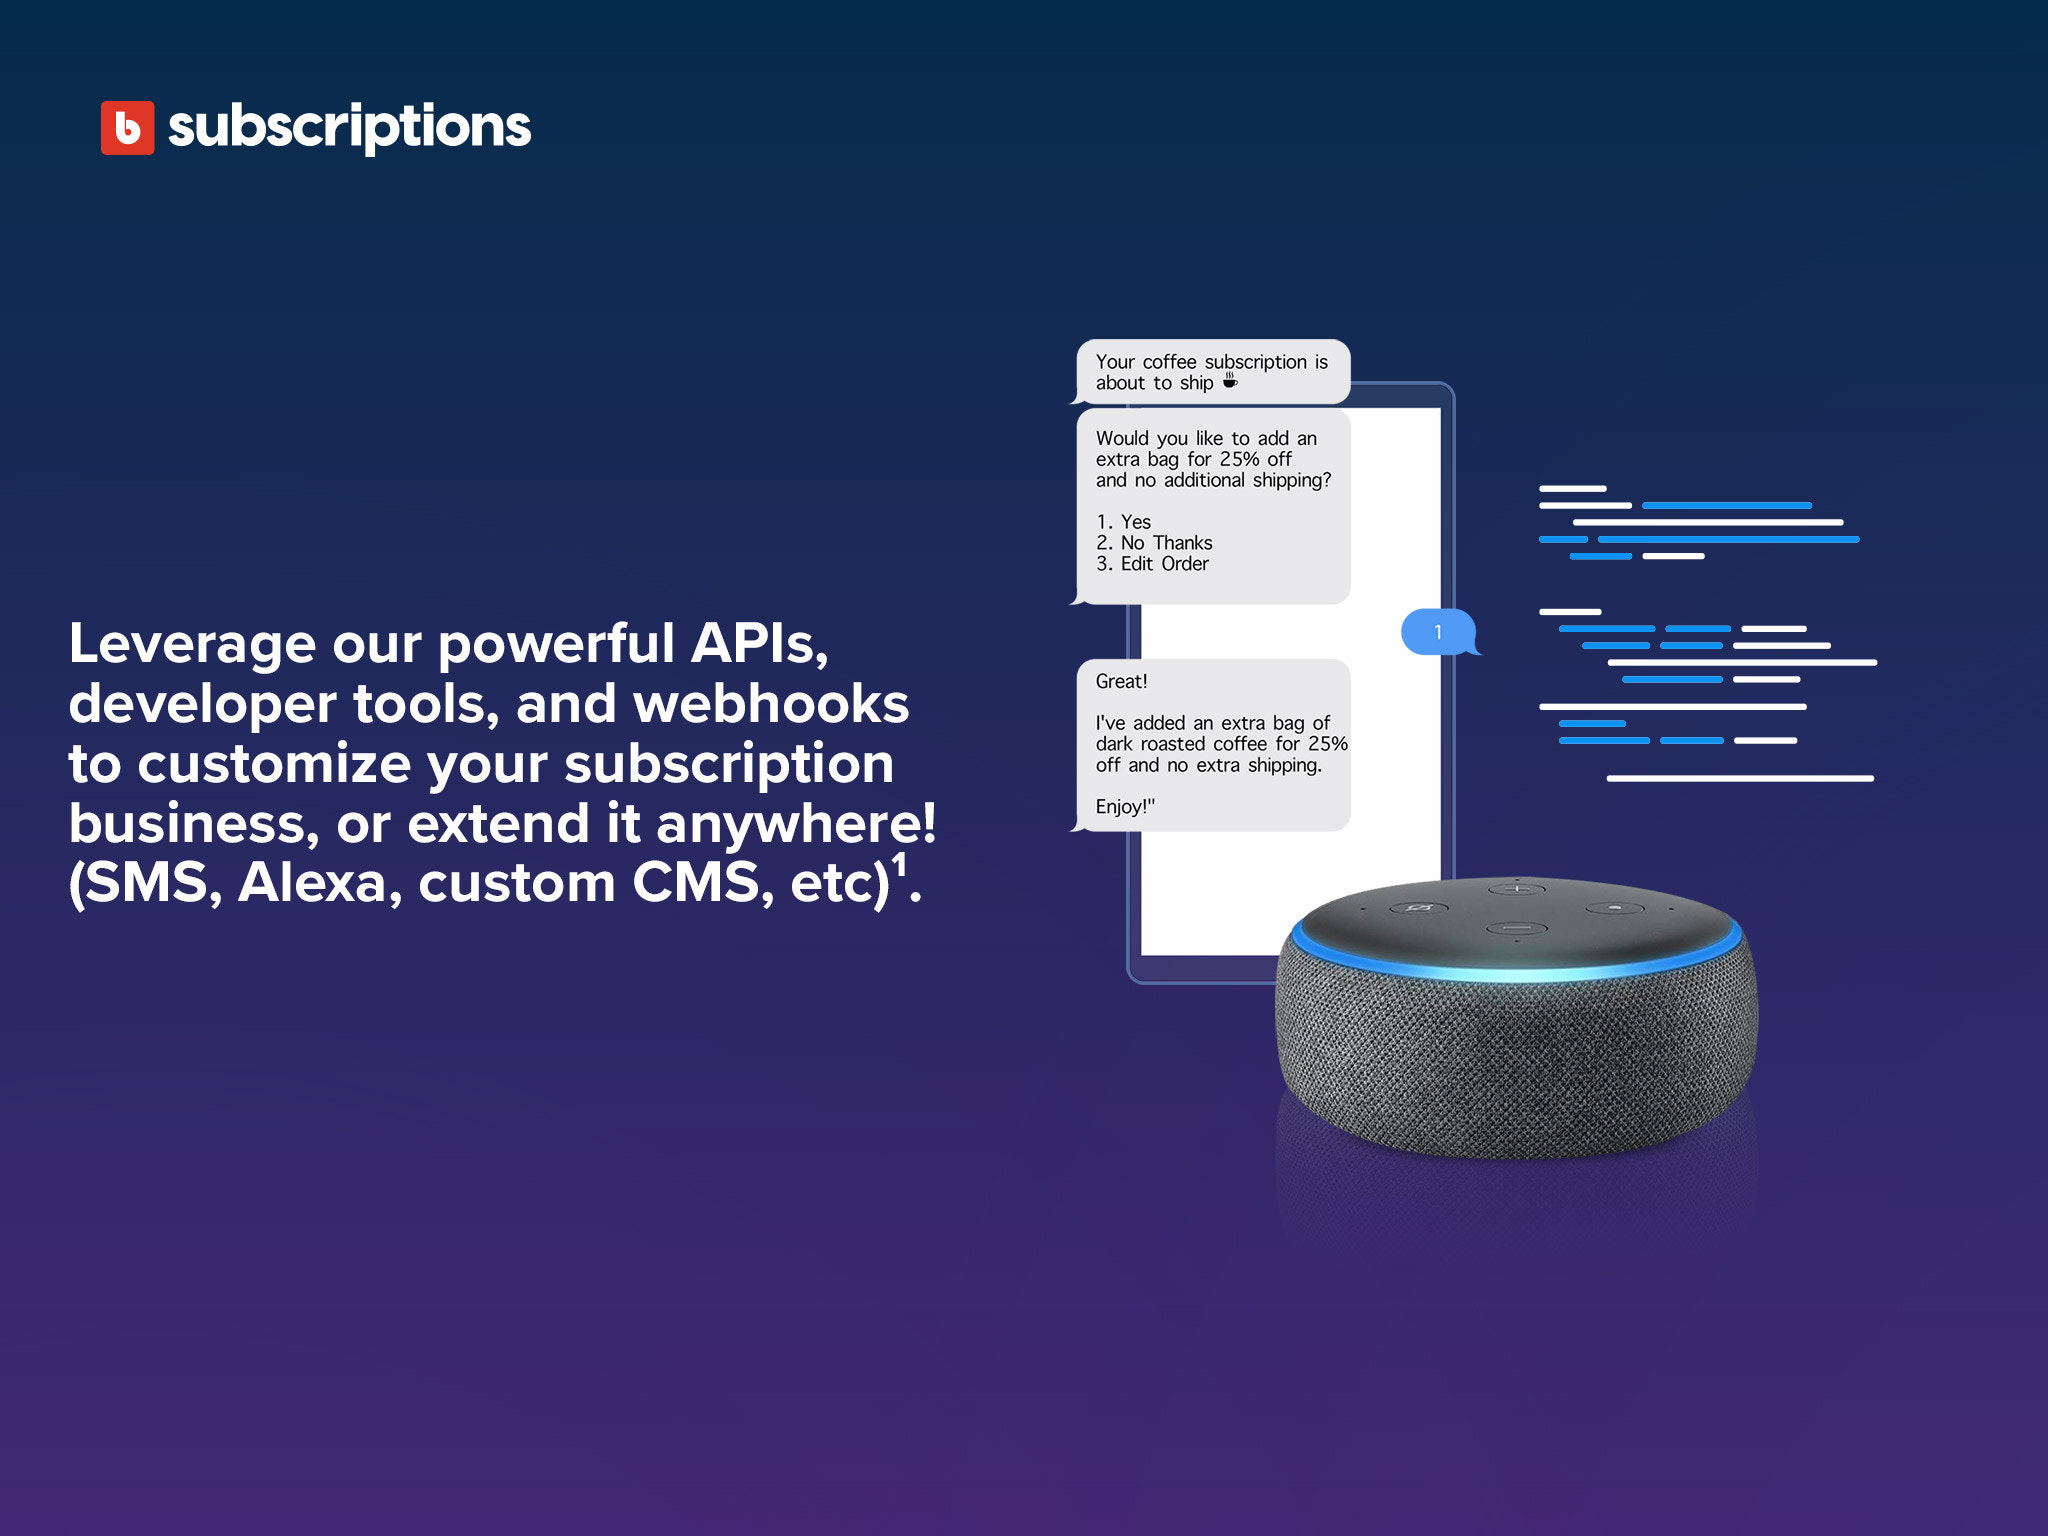 Leverage our powerful APIs, developer tools, and webhooks.